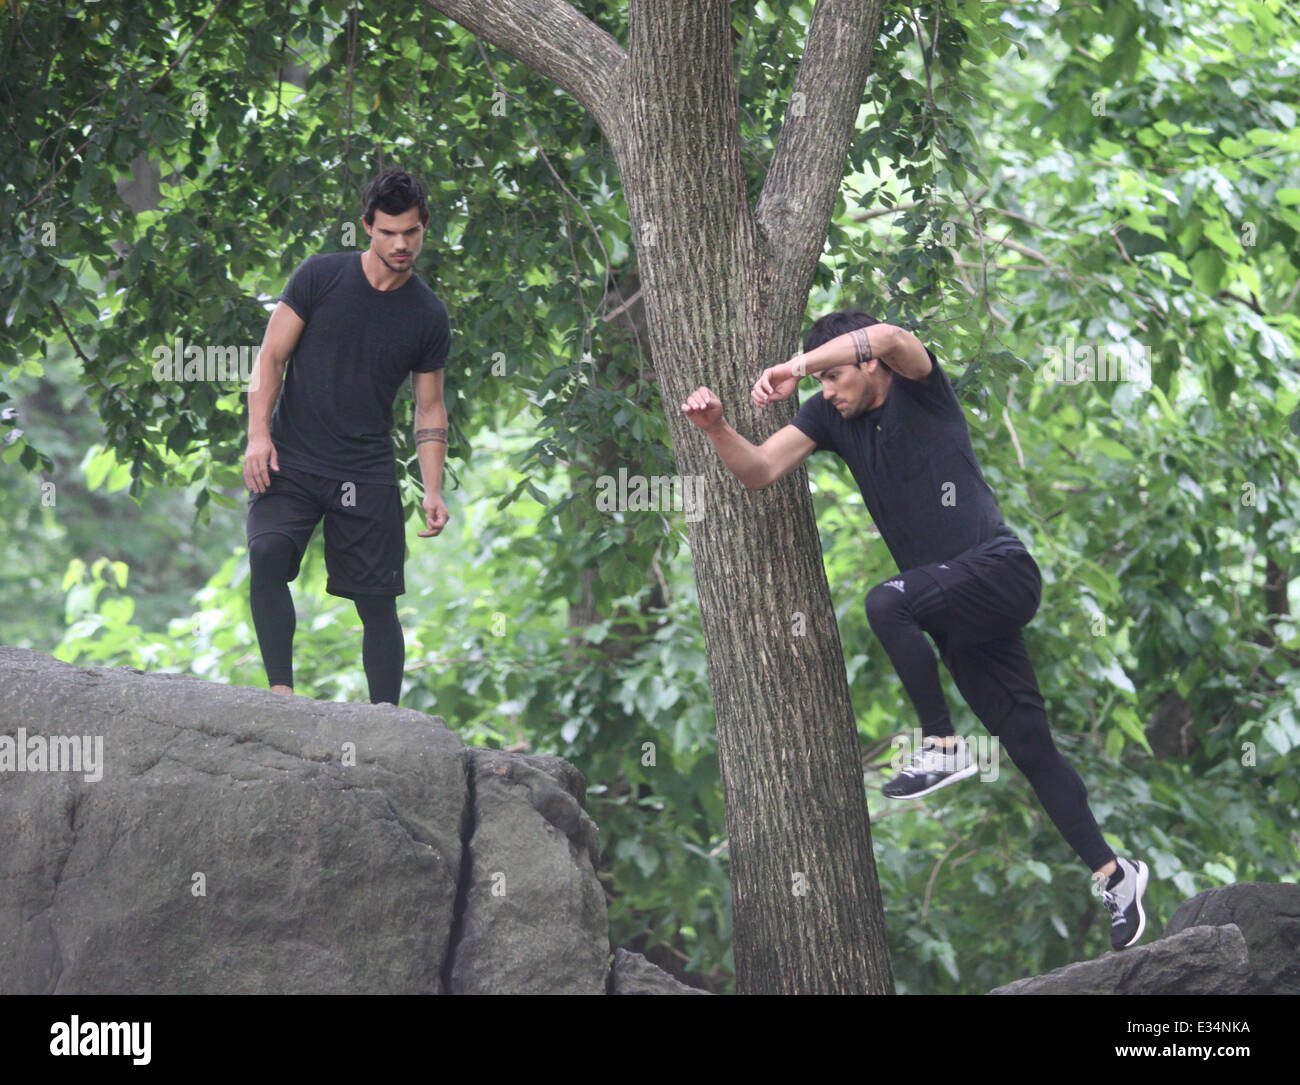 Taylor Lautner wows his fans flying from rock to rock on the film set of 'Tracers'  Featuring: Taylor Lautner Where: Stock Photo